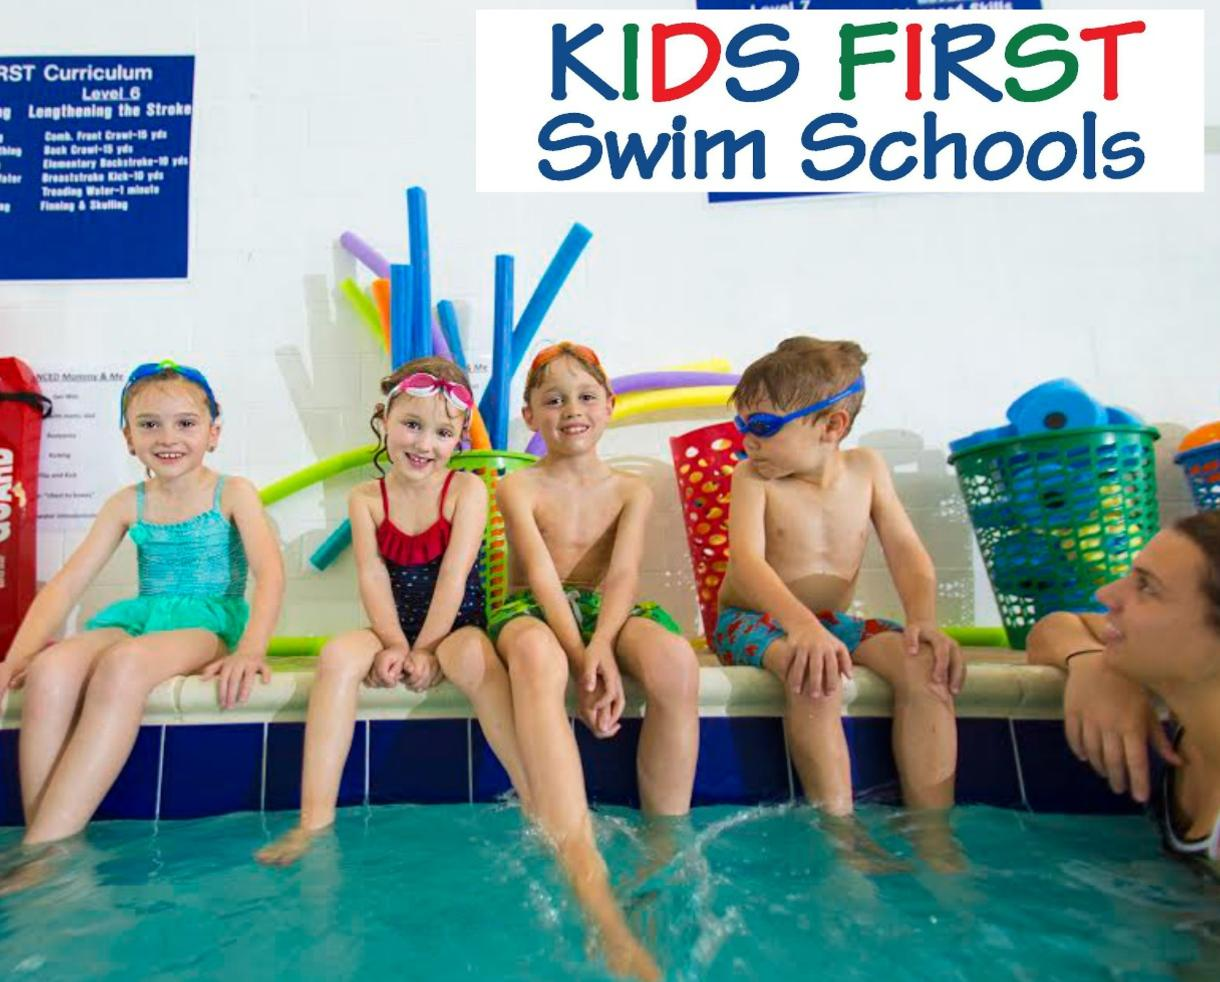 Local Deal: $50 for FOUR swim lessons at Kids First Swim School in Bel Air